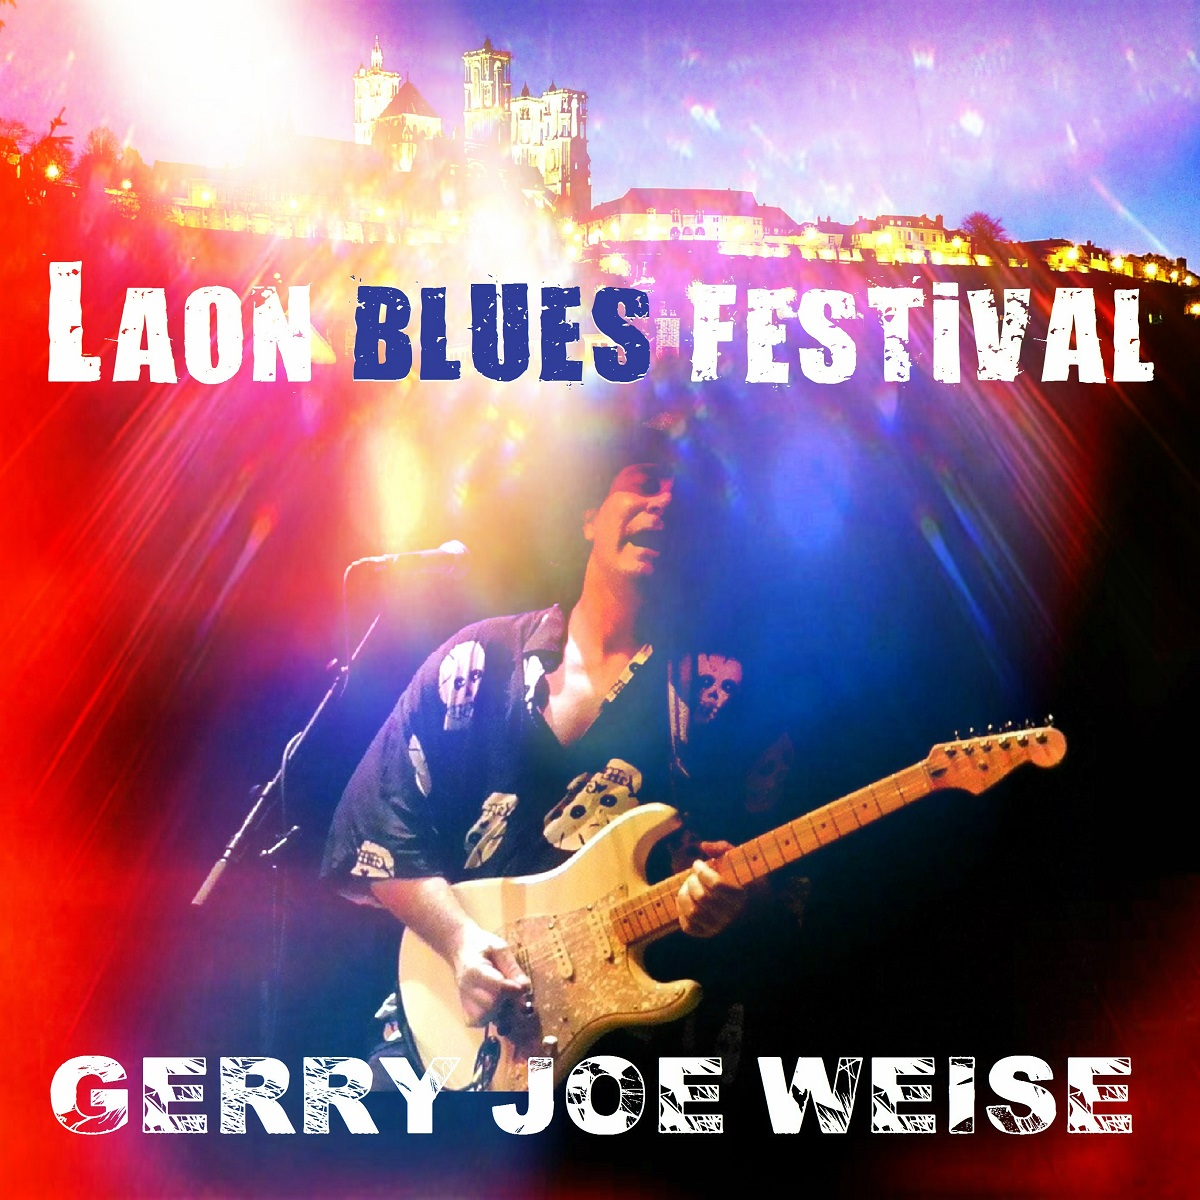 Laon Blues Festival, 2017 album